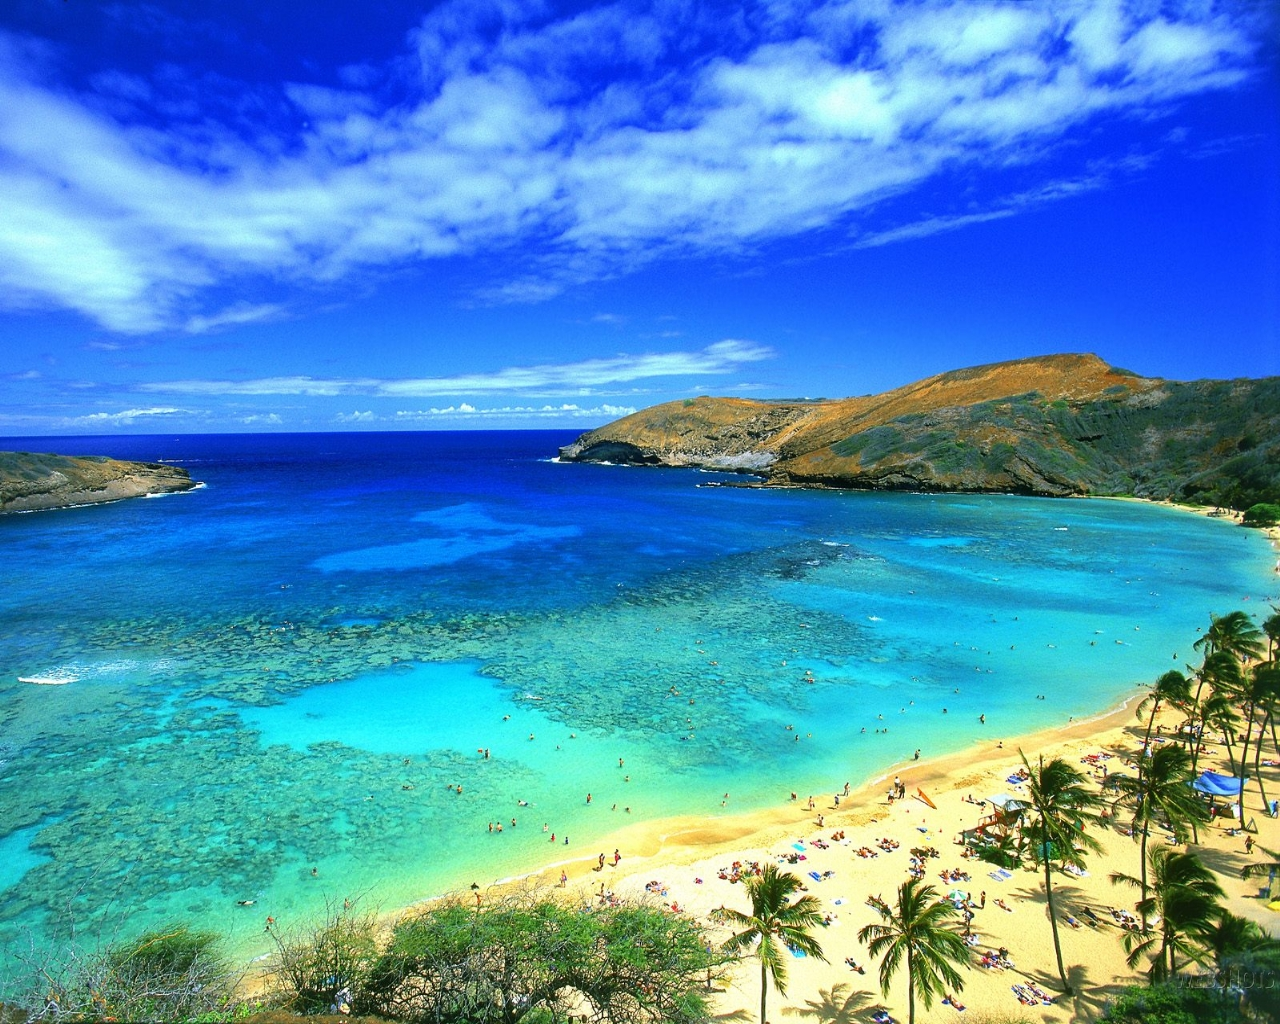 Hawaii Is The Newest State Of US And Only Completely Made Islands Hawaiis Natural Diverse Scenery Warm Tropical Climate Abundance